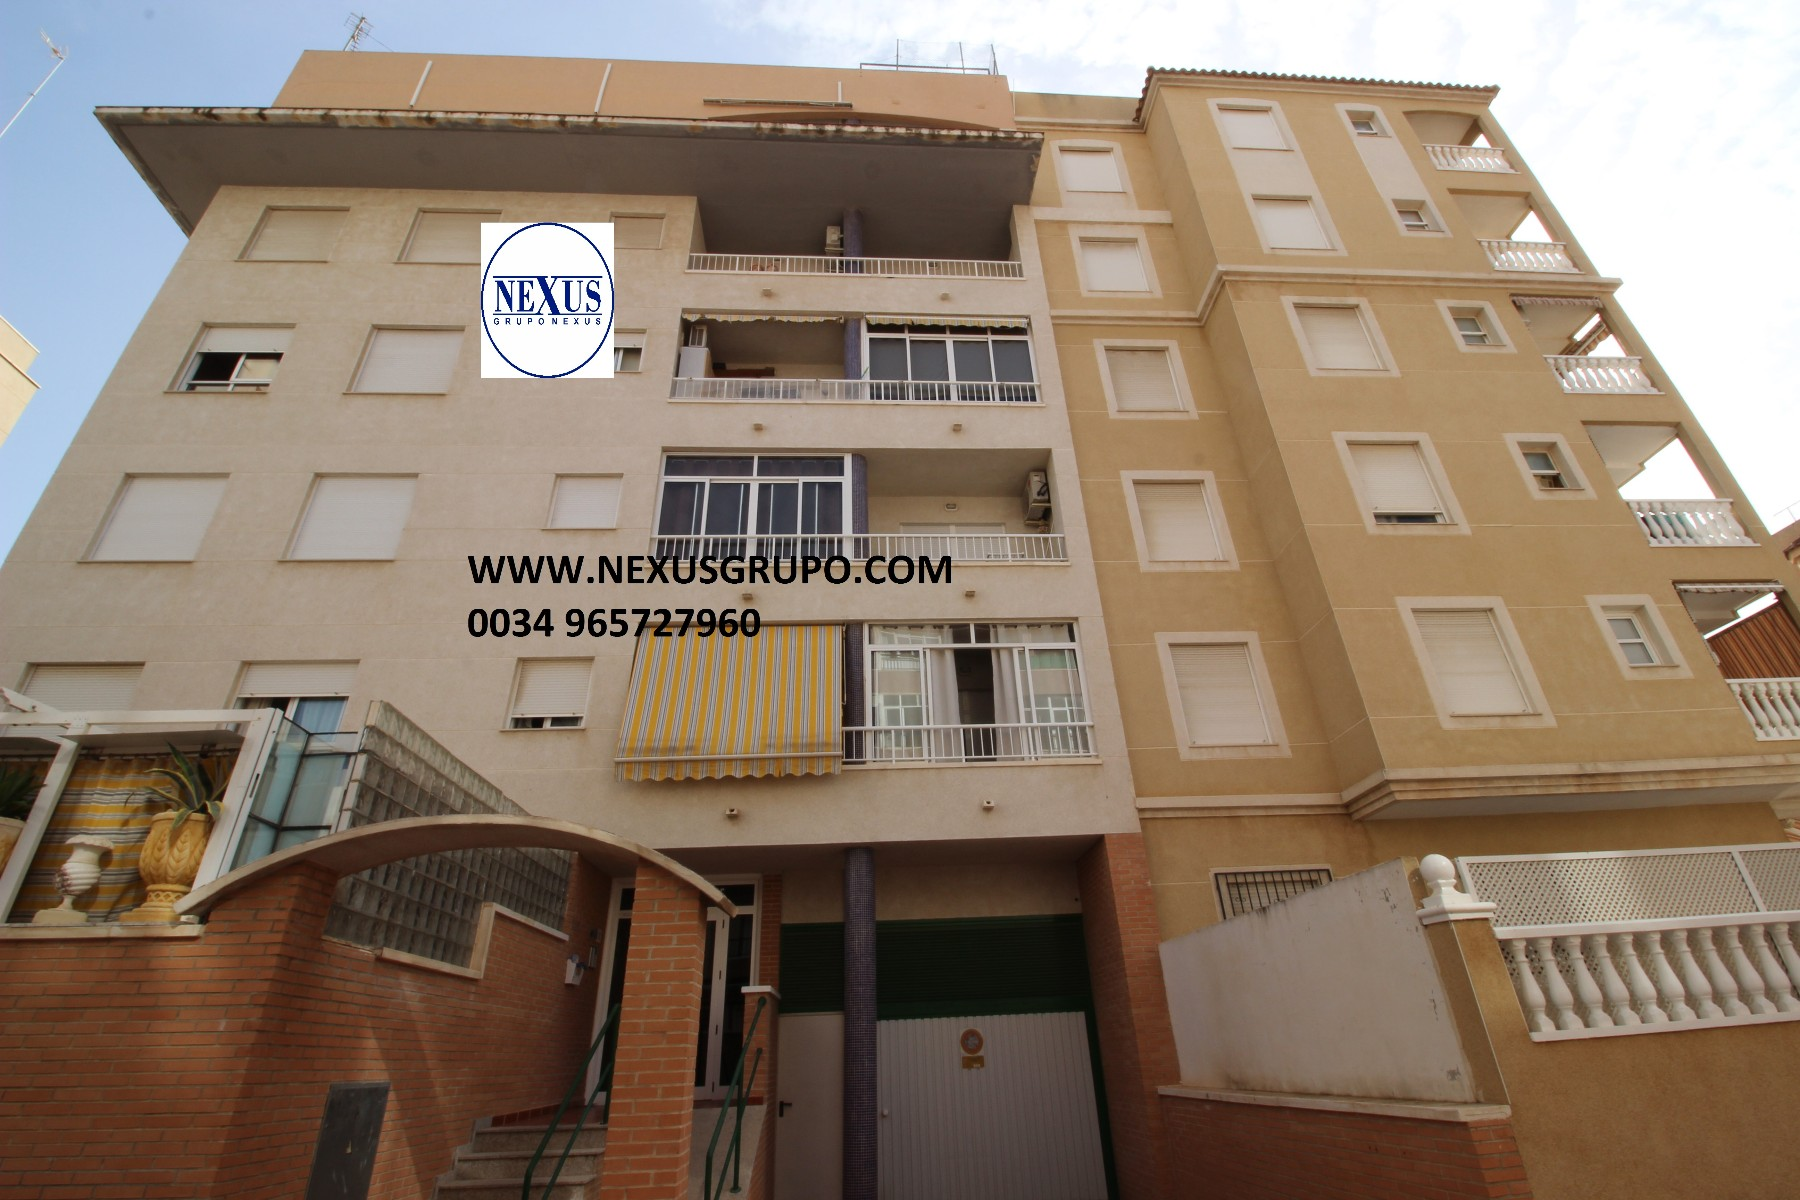 Grupo Nexus Real Estate Agency sells an apartment close to Mas y Mas supermarket. in Nexus Grupo